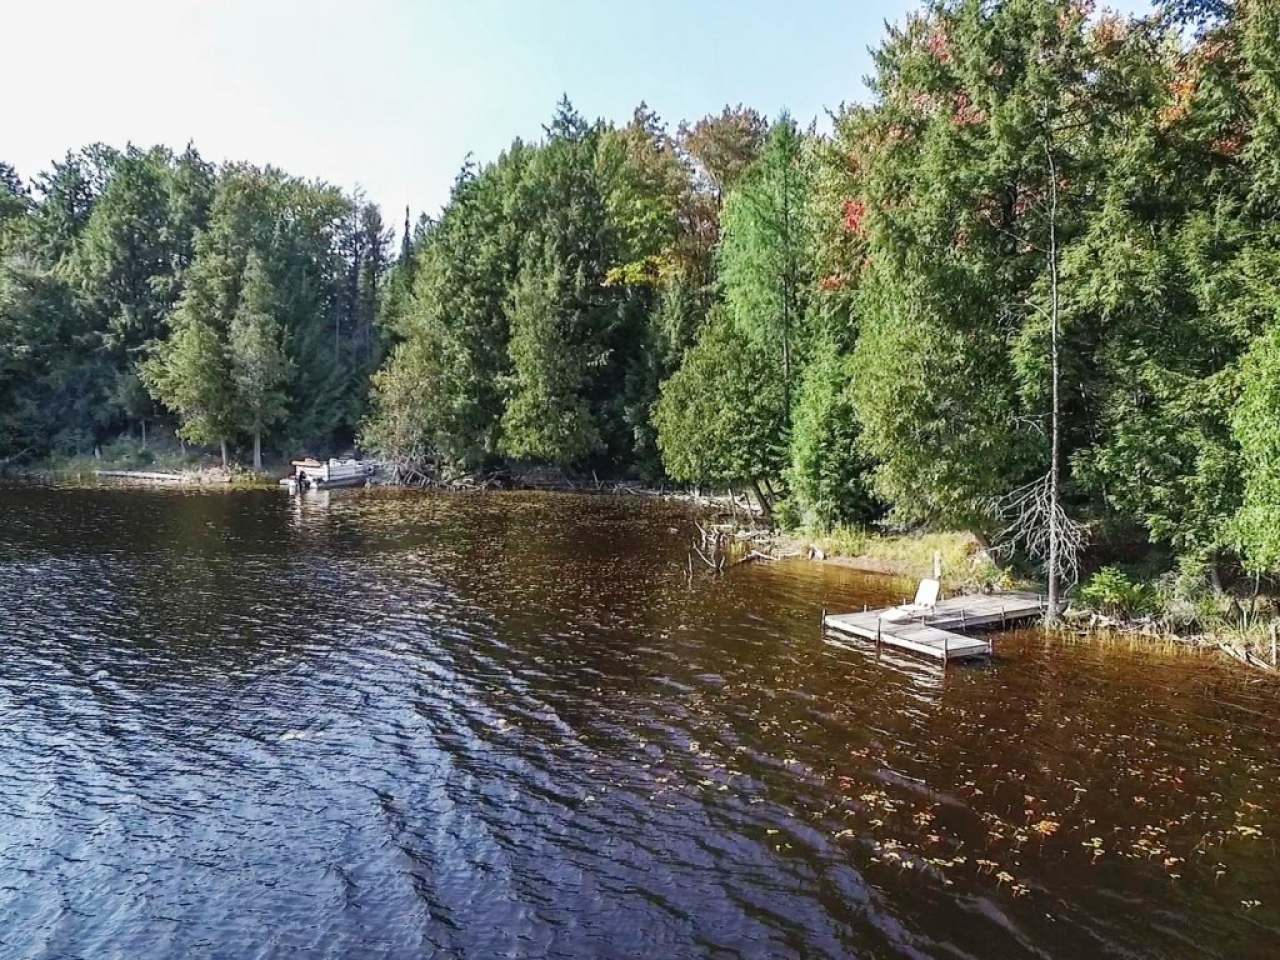 SELLER OFFERING $50K DISCOUNT OFF LIST PRICE IF CLOSED ON OR PRIOR TO 11/15/19!! Ultimate hunting, fishing, & wilderness retreat awaits! Stunning 48.3 acre property wraps around most of the Eastern end of pristine Gaylord Lake just North of Presque Isle, WI. Views are amazing, as well as the 2,618' of sand/stone shoreline. Explore hundreds of miles of ATV & snowmobile trails right off the doorstep. Enjoy a charming rustic cabin on the property which sleeps 8 while you plan your Northwoods lodge. Make your dreams become a reality & visit this unique piece of property yourself. Abundance of maple trees makes this an ideal place to produce large quantities of maple syrup. Additional 4.16 acres & 570' of frontage is available. Seller is open to 1031 Exchange, or other alternatives. Property can be enrolled in the Property Managed Forest program to reduce taxes. Seller currently pays $971/yr property taxes & will explore many options w/new owner to reduce property tax burden.